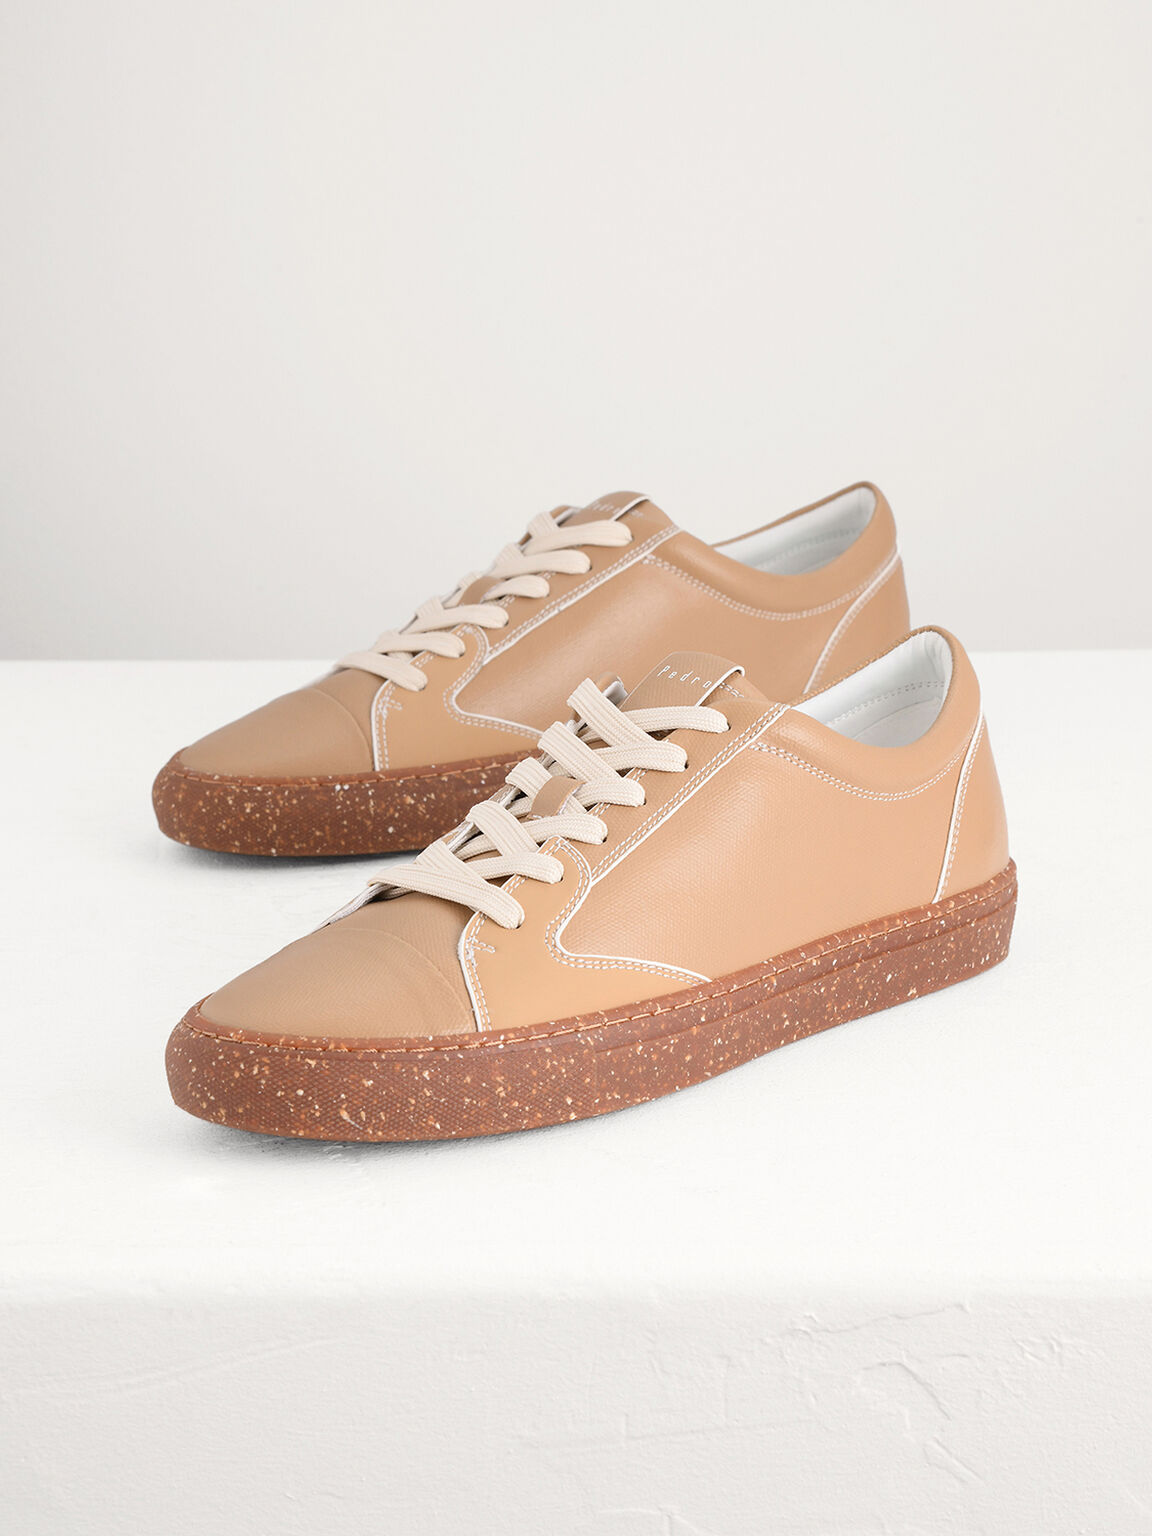 Sustainable Court Sneakers, Camel, hi-res